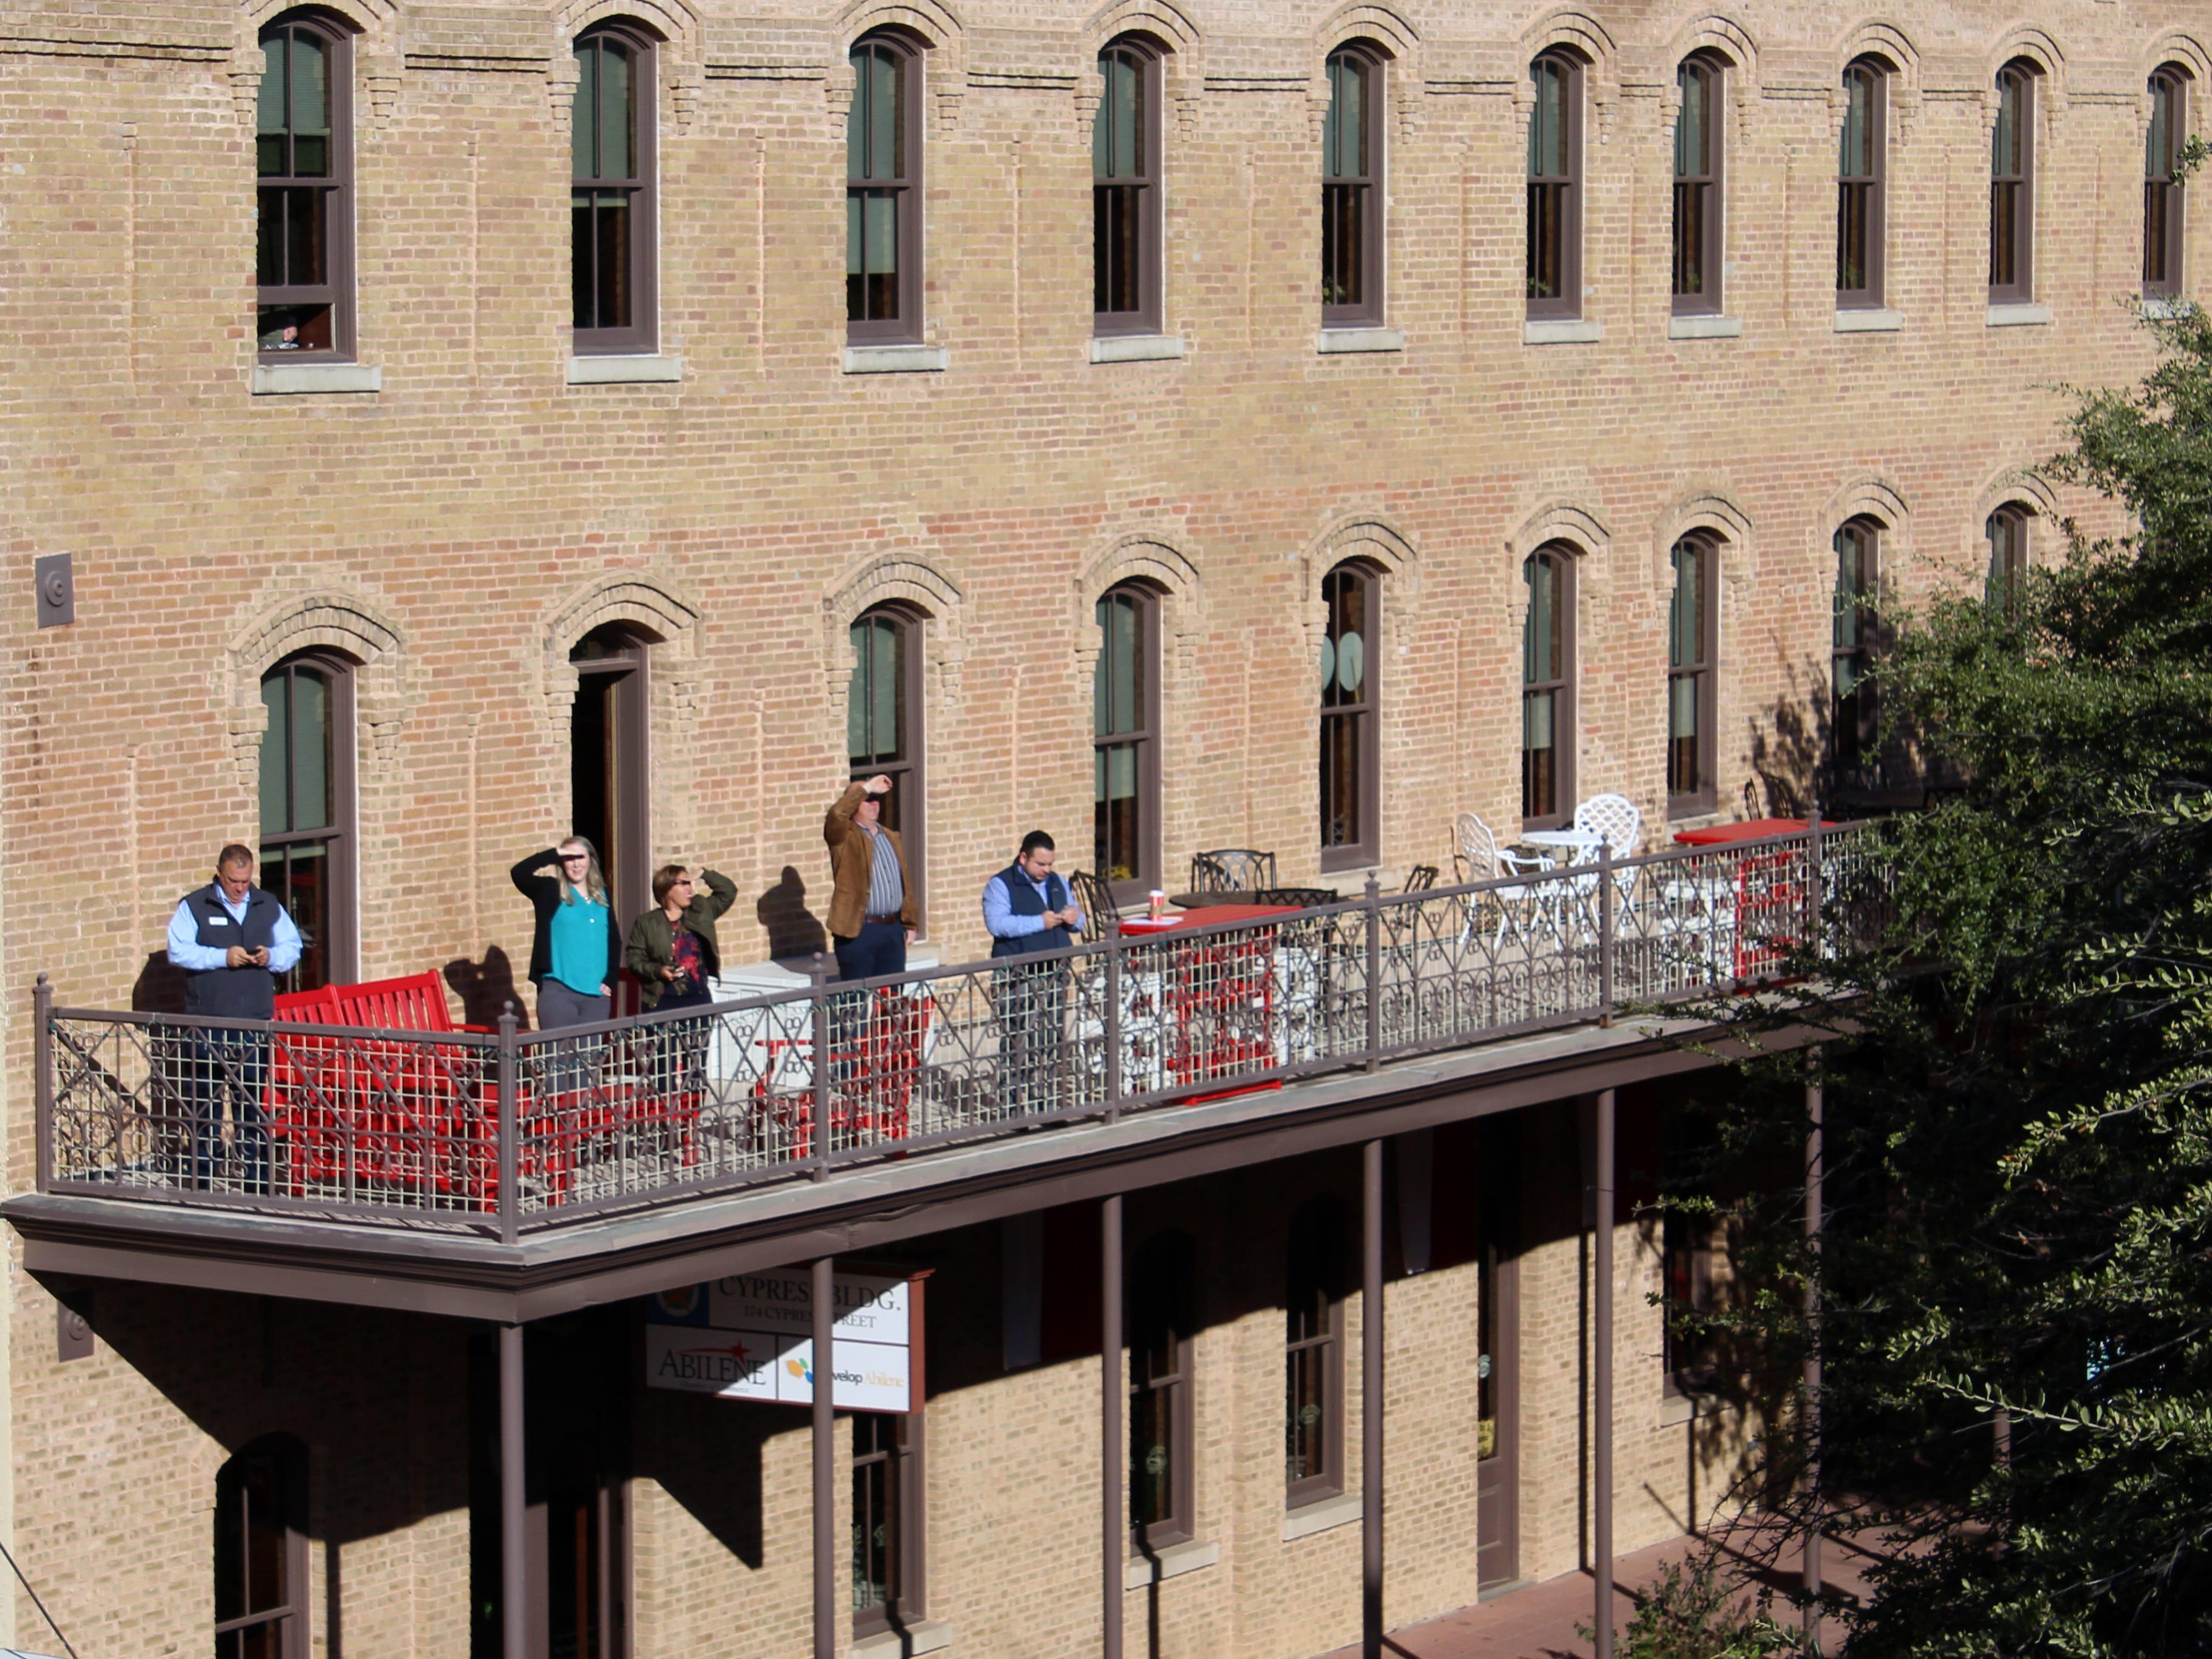 People watch from the Abilene Chamber of Commerce balcony as firefighters investigate a sparking electrical system on the roof of the Abilene Reporter-News Thursday Nov. 15, 2018. The two-alarm fire was called in at 9:20 a.m.